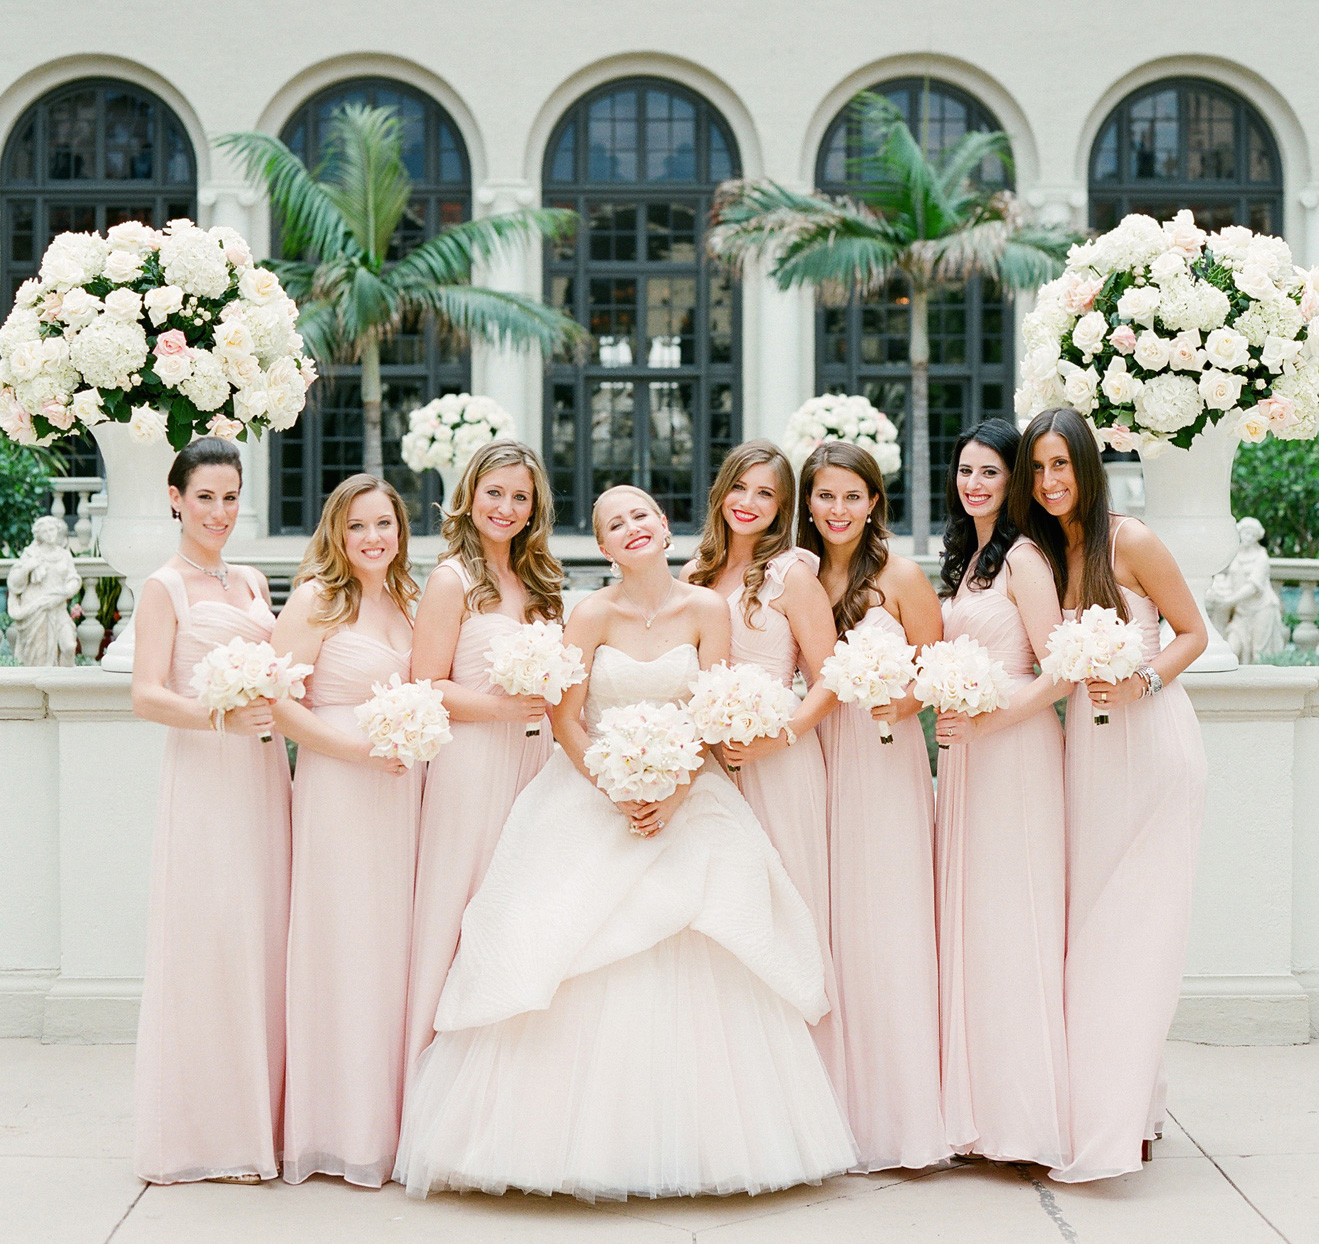 Bridesmaid dresses blush bridesmaid gowns from real weddings mismatched neckline long blush pink bridesmaid dresses ombrellifo Images